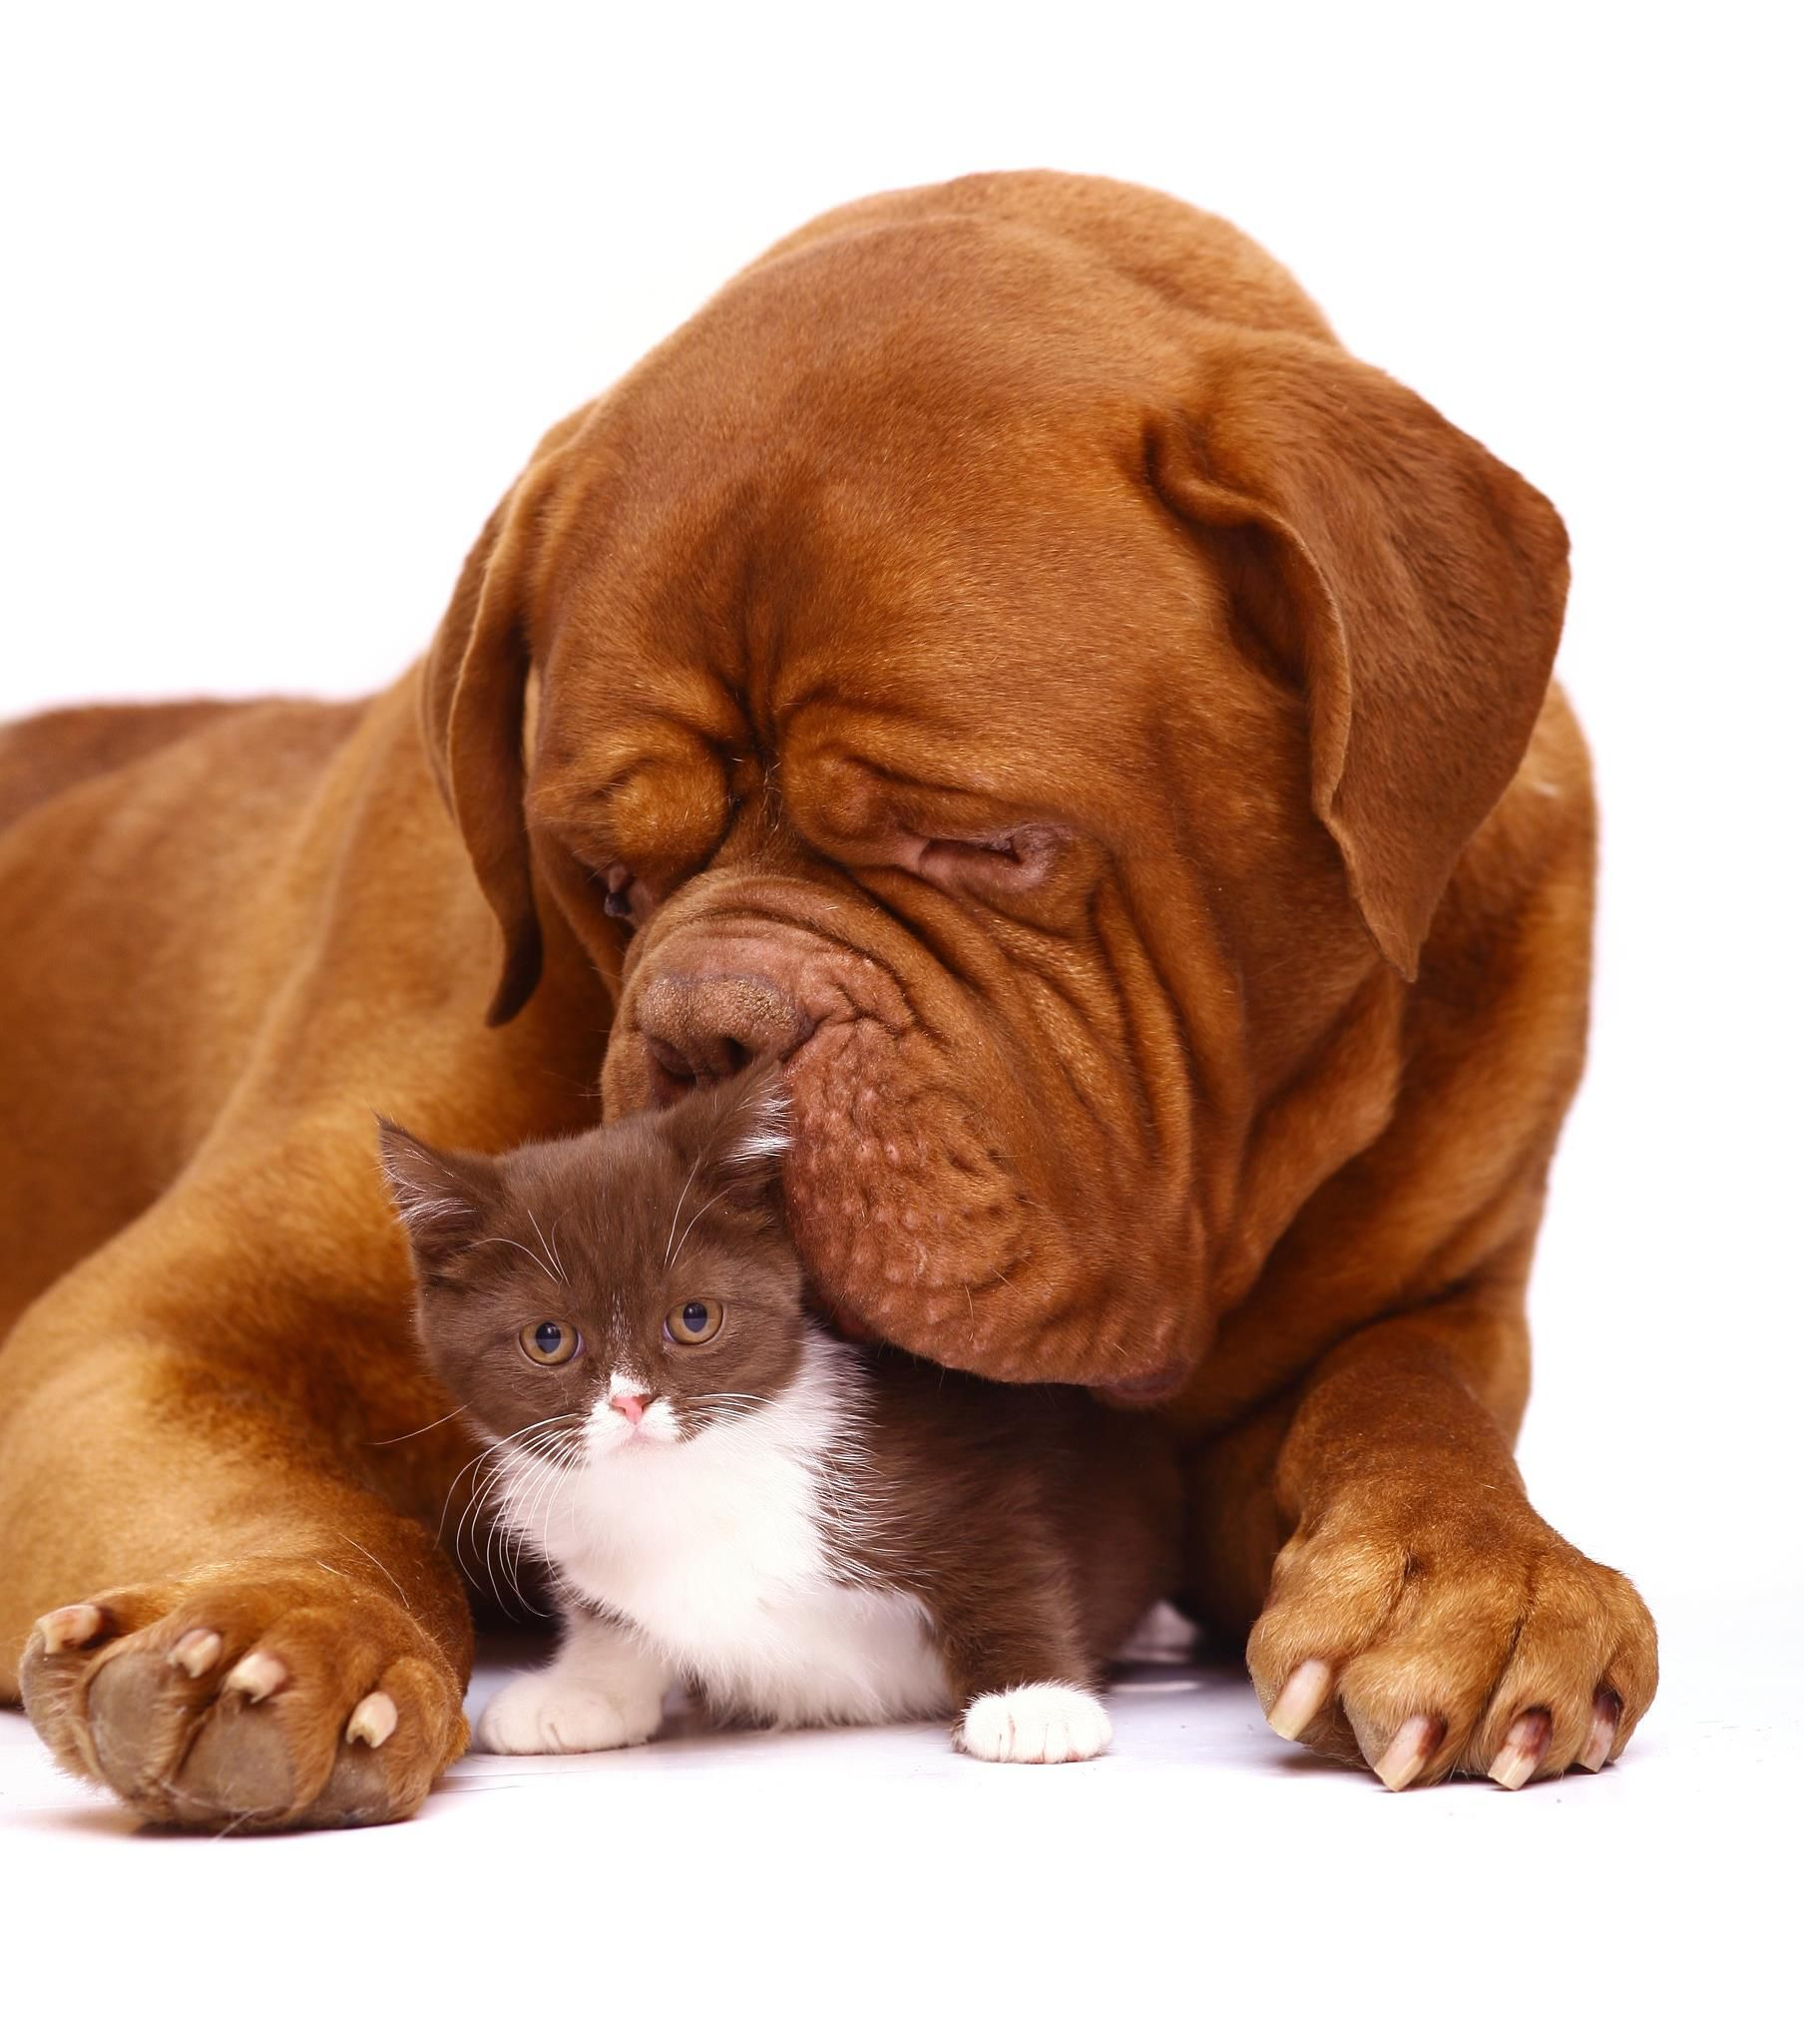 Dogue de Bordeaux and adorable chocolate and white kitten ...